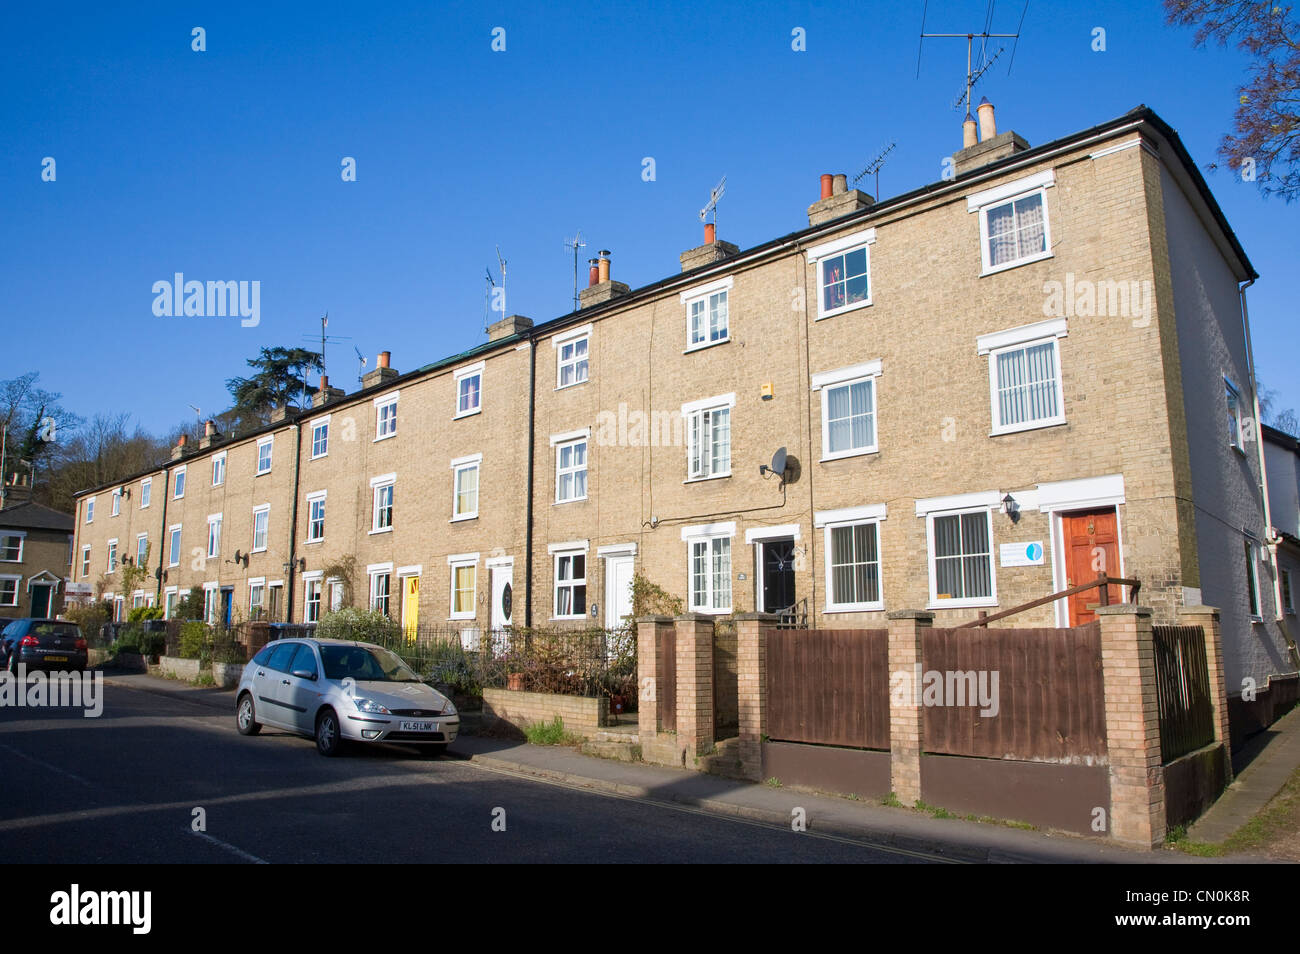 Row of brick terraced houses on Melton Hill, Melton, Suffolk, England - Stock Image